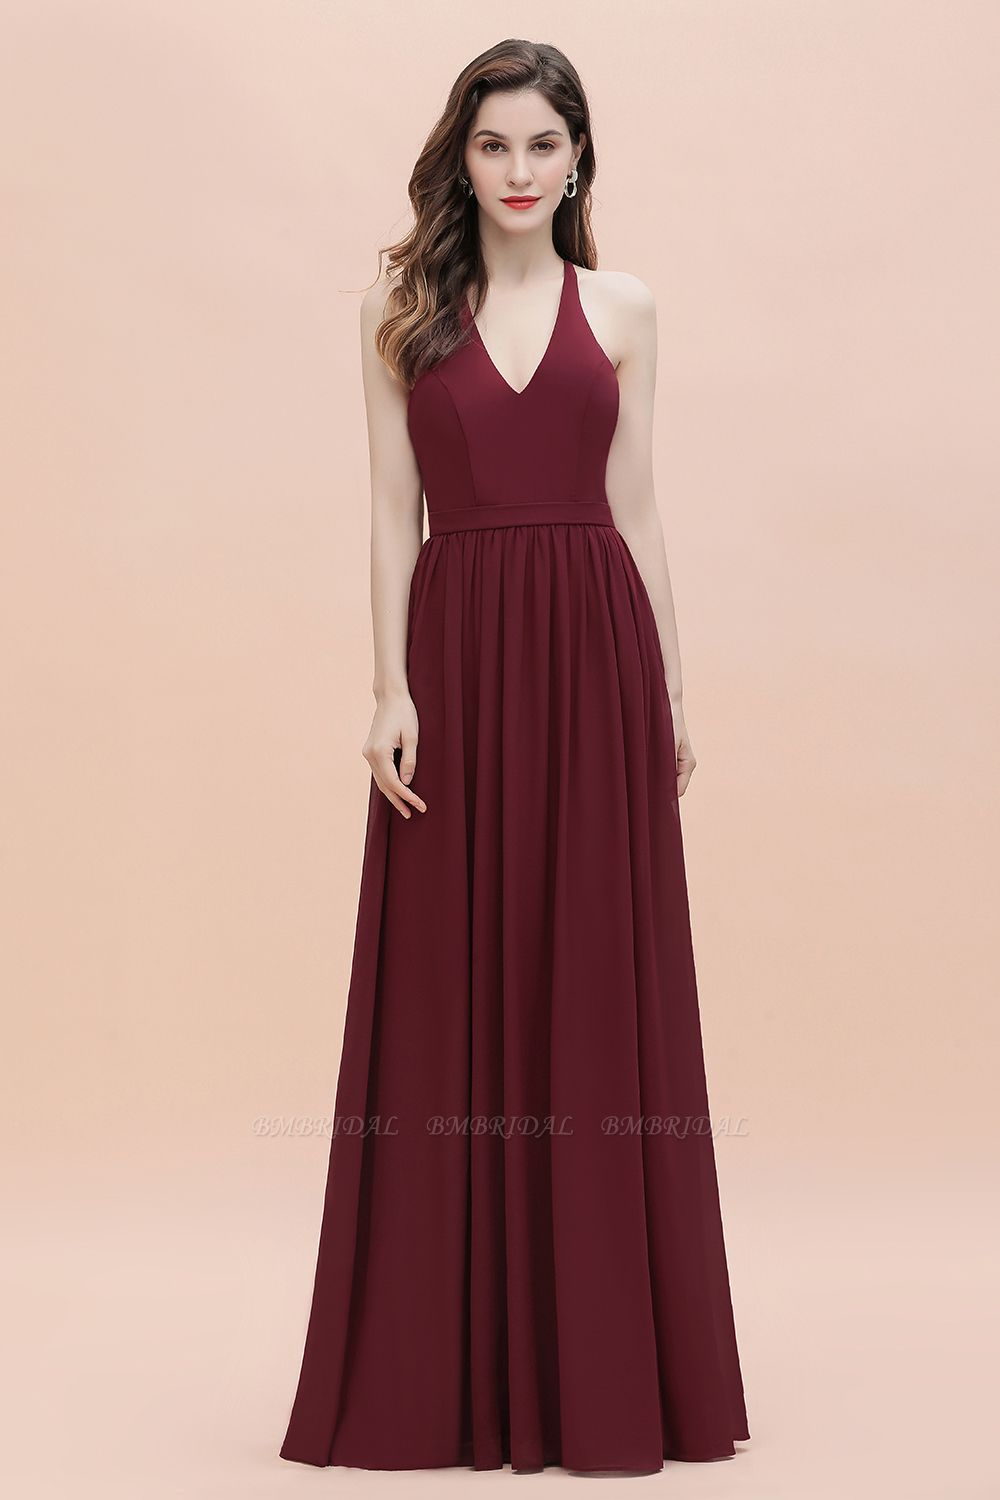 BMbridal A-Line Lace Burgundy Bridesmaid Dress Lace Sequins Sleeveless Evening Dress